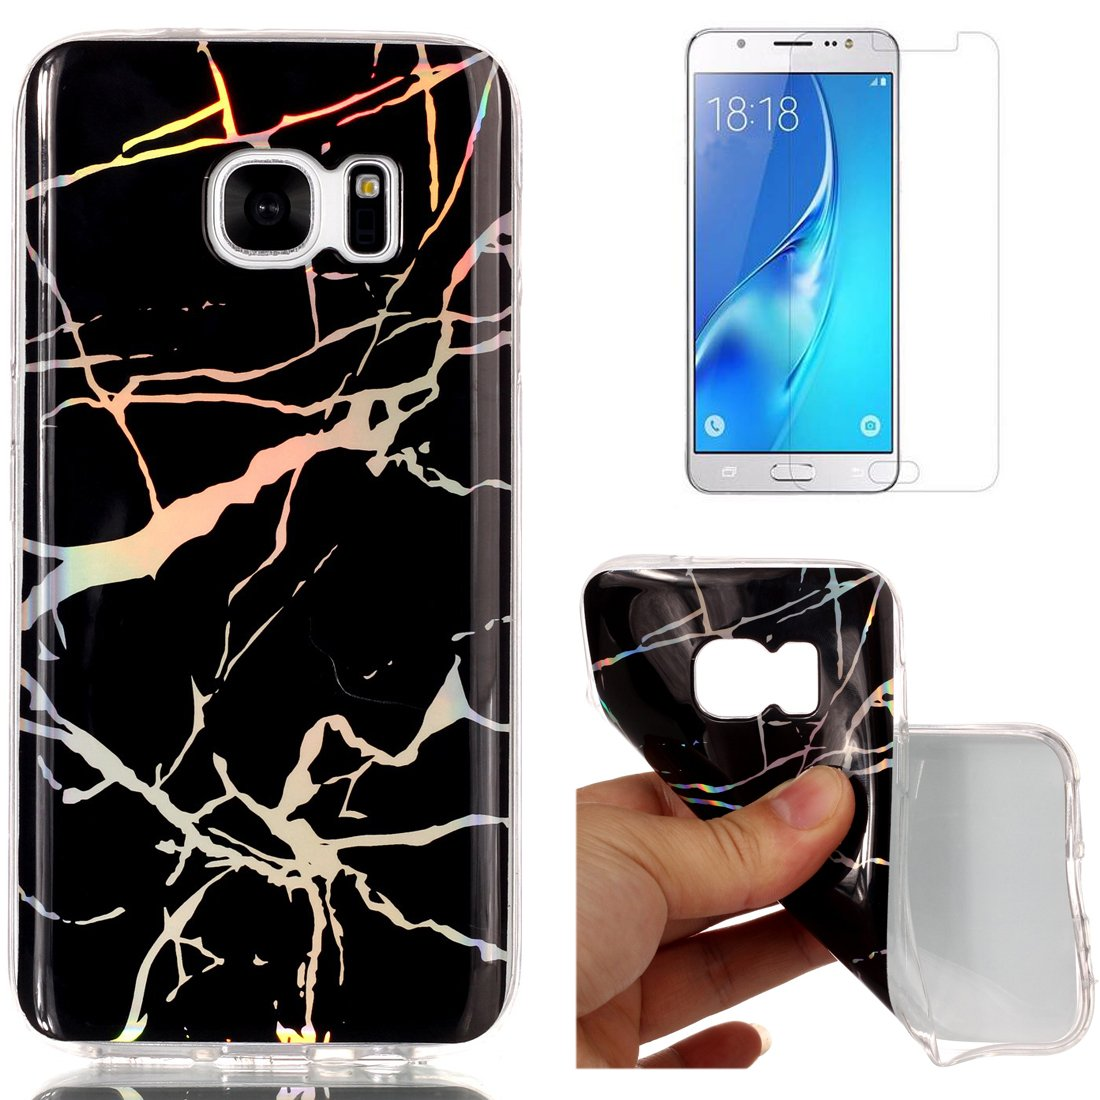 For Samsung Galaxy S7 Marble Case Purple, OYIME Unique Luxury Glitter Colorful Plating Pattern Skin Design Clear Silicone Rubber Slim Fit Ultra Thin Protective Back Cover Glossy Soft Gel TPU Shell Shockproof Drop Protection Protective Transparent Bumper an